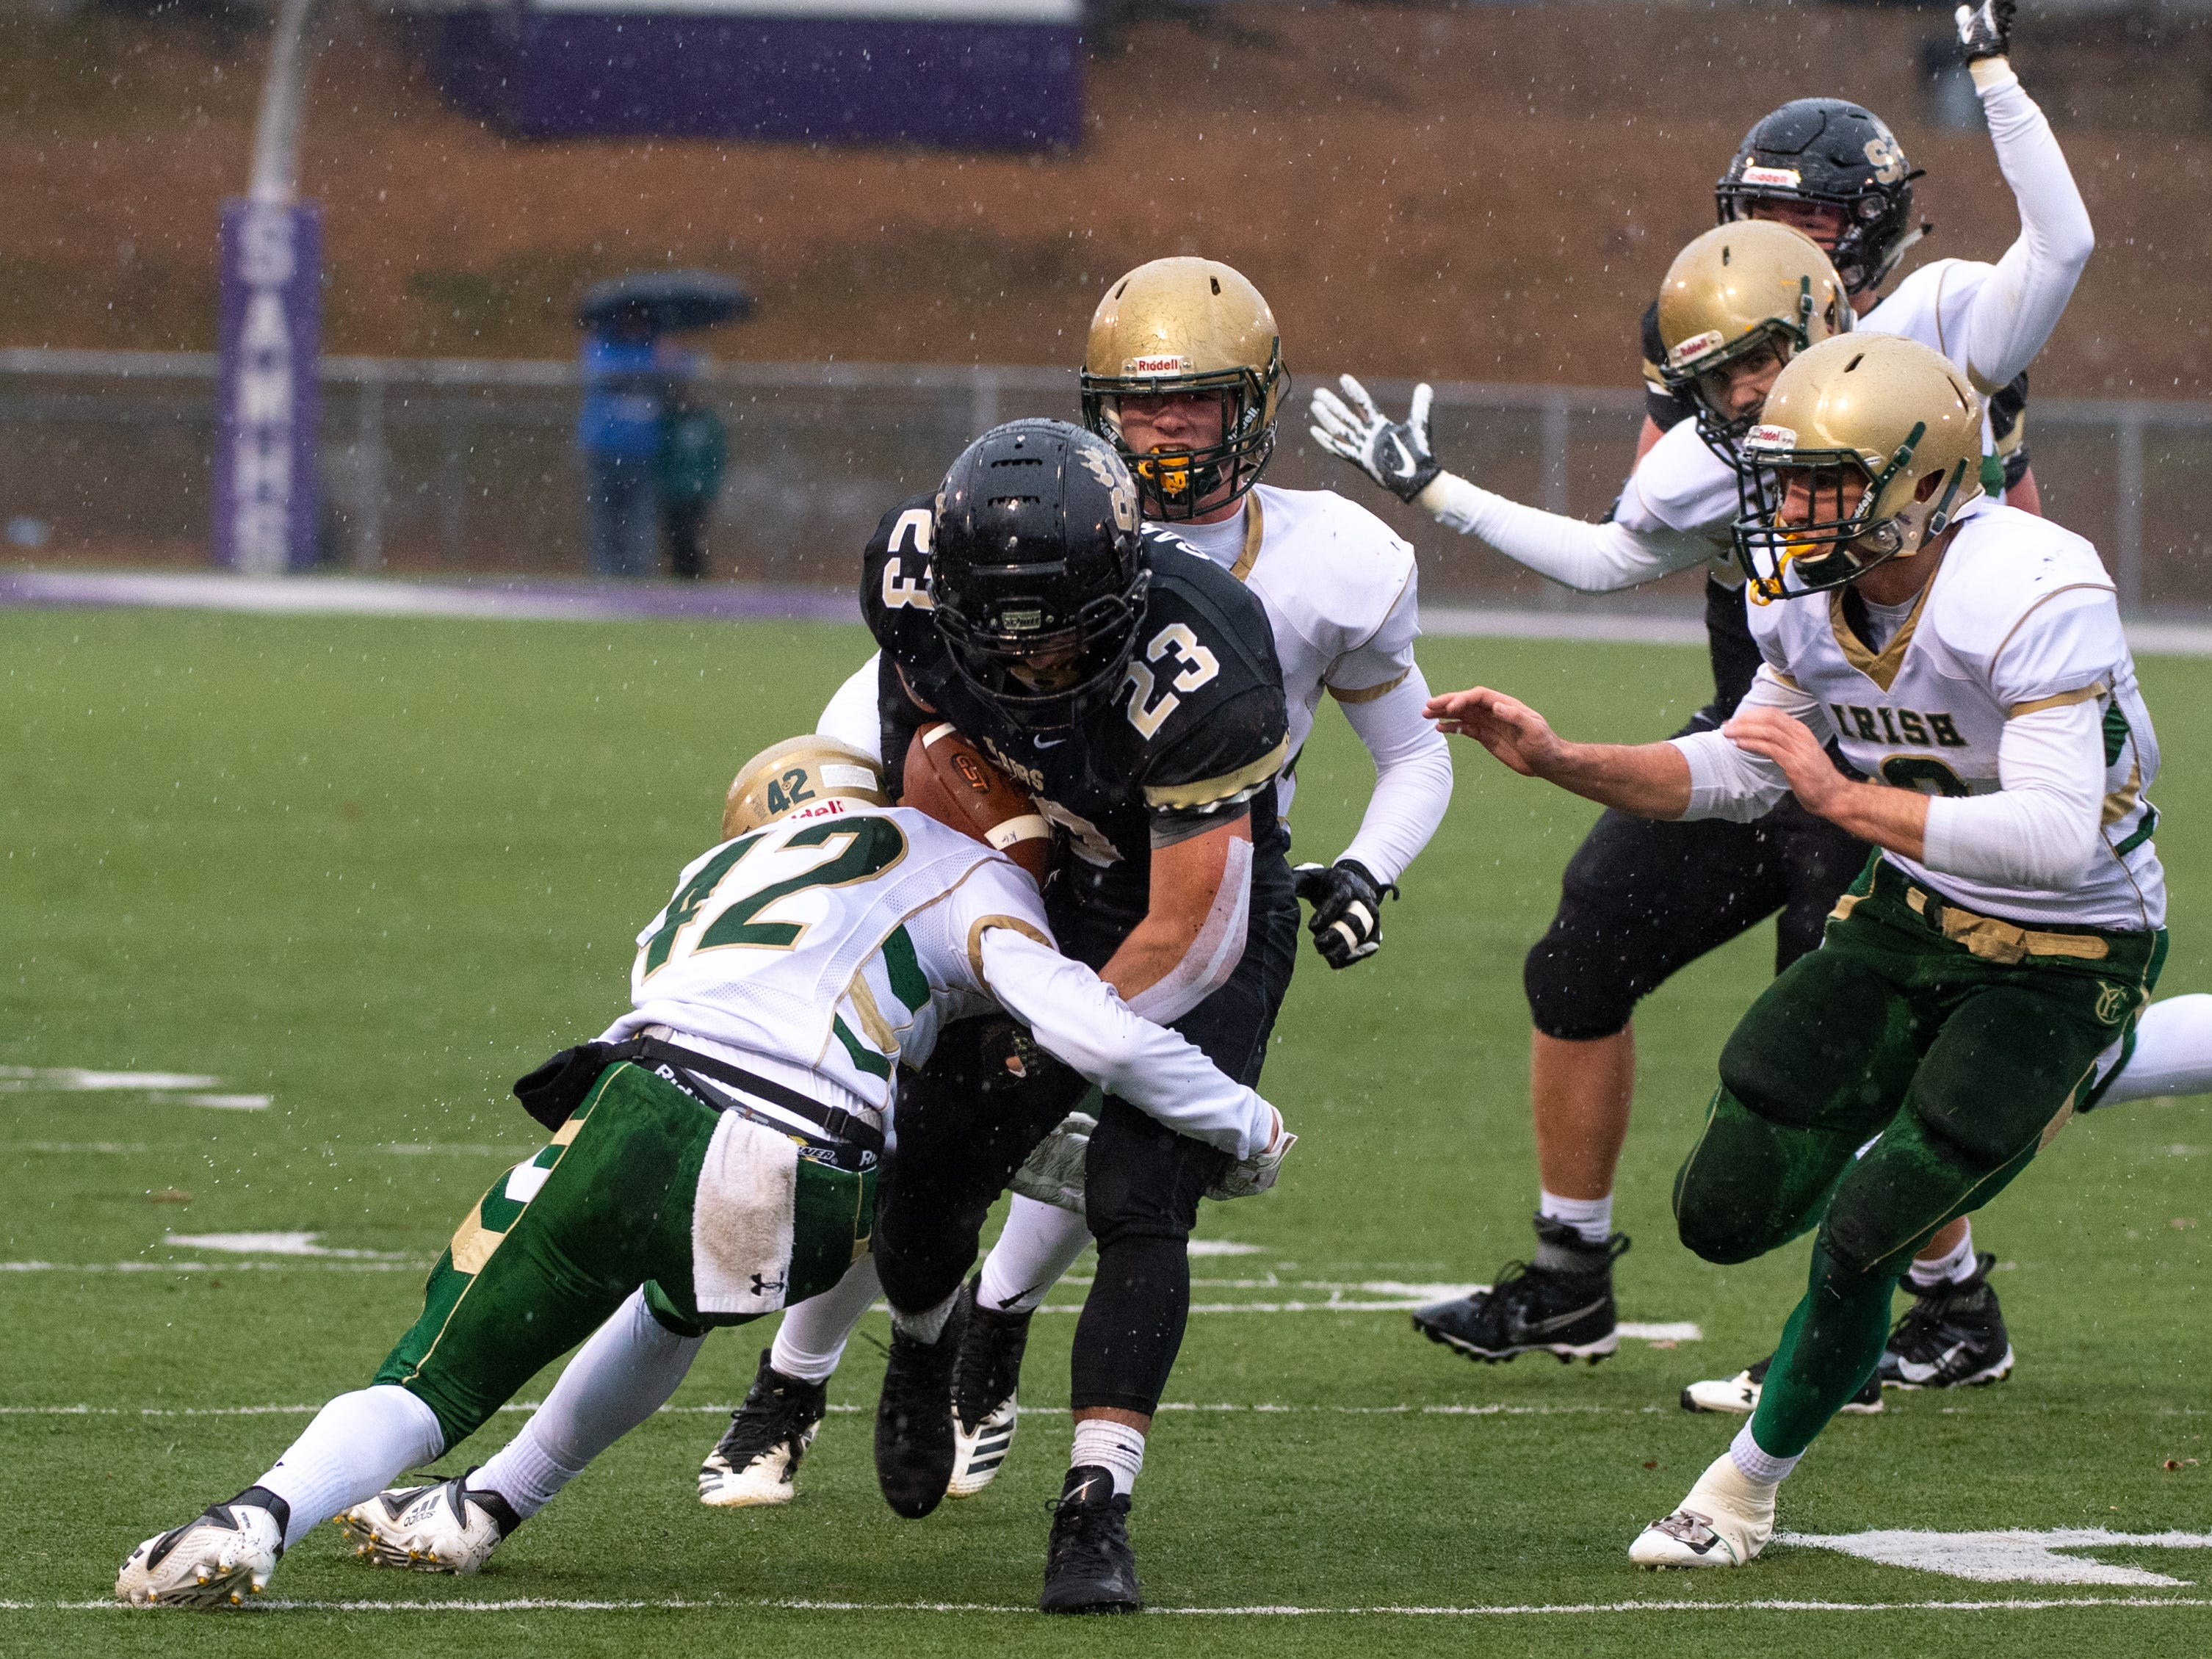 Gaige Garcia (23) is taken down during the state quarter-finals game between York Catholic and Southern Columbia at Shamokin Area High School, November 24, 2018. The Tigers defeated the Irish 56-23.